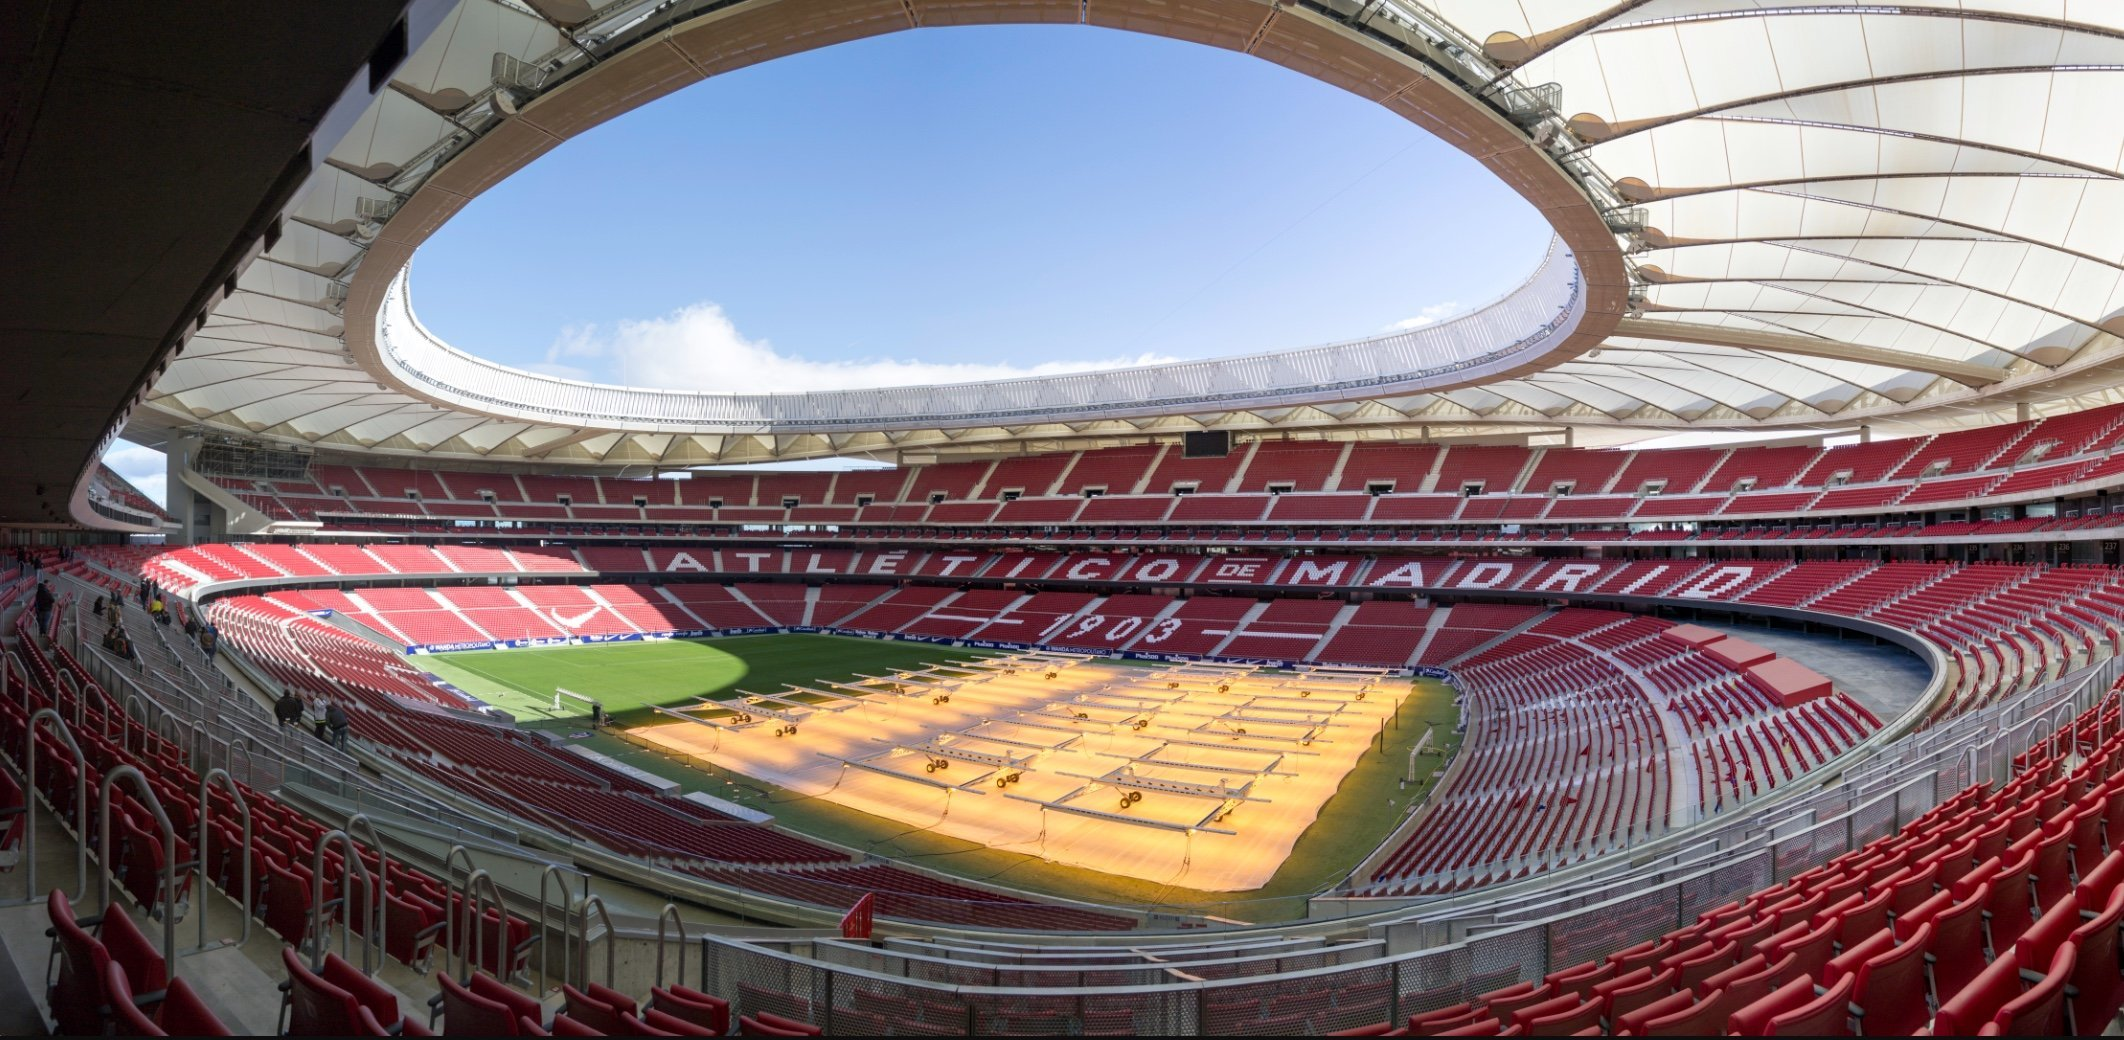 Wanda Metropolitano. (Photo by Fernandopascullo, License: CC)